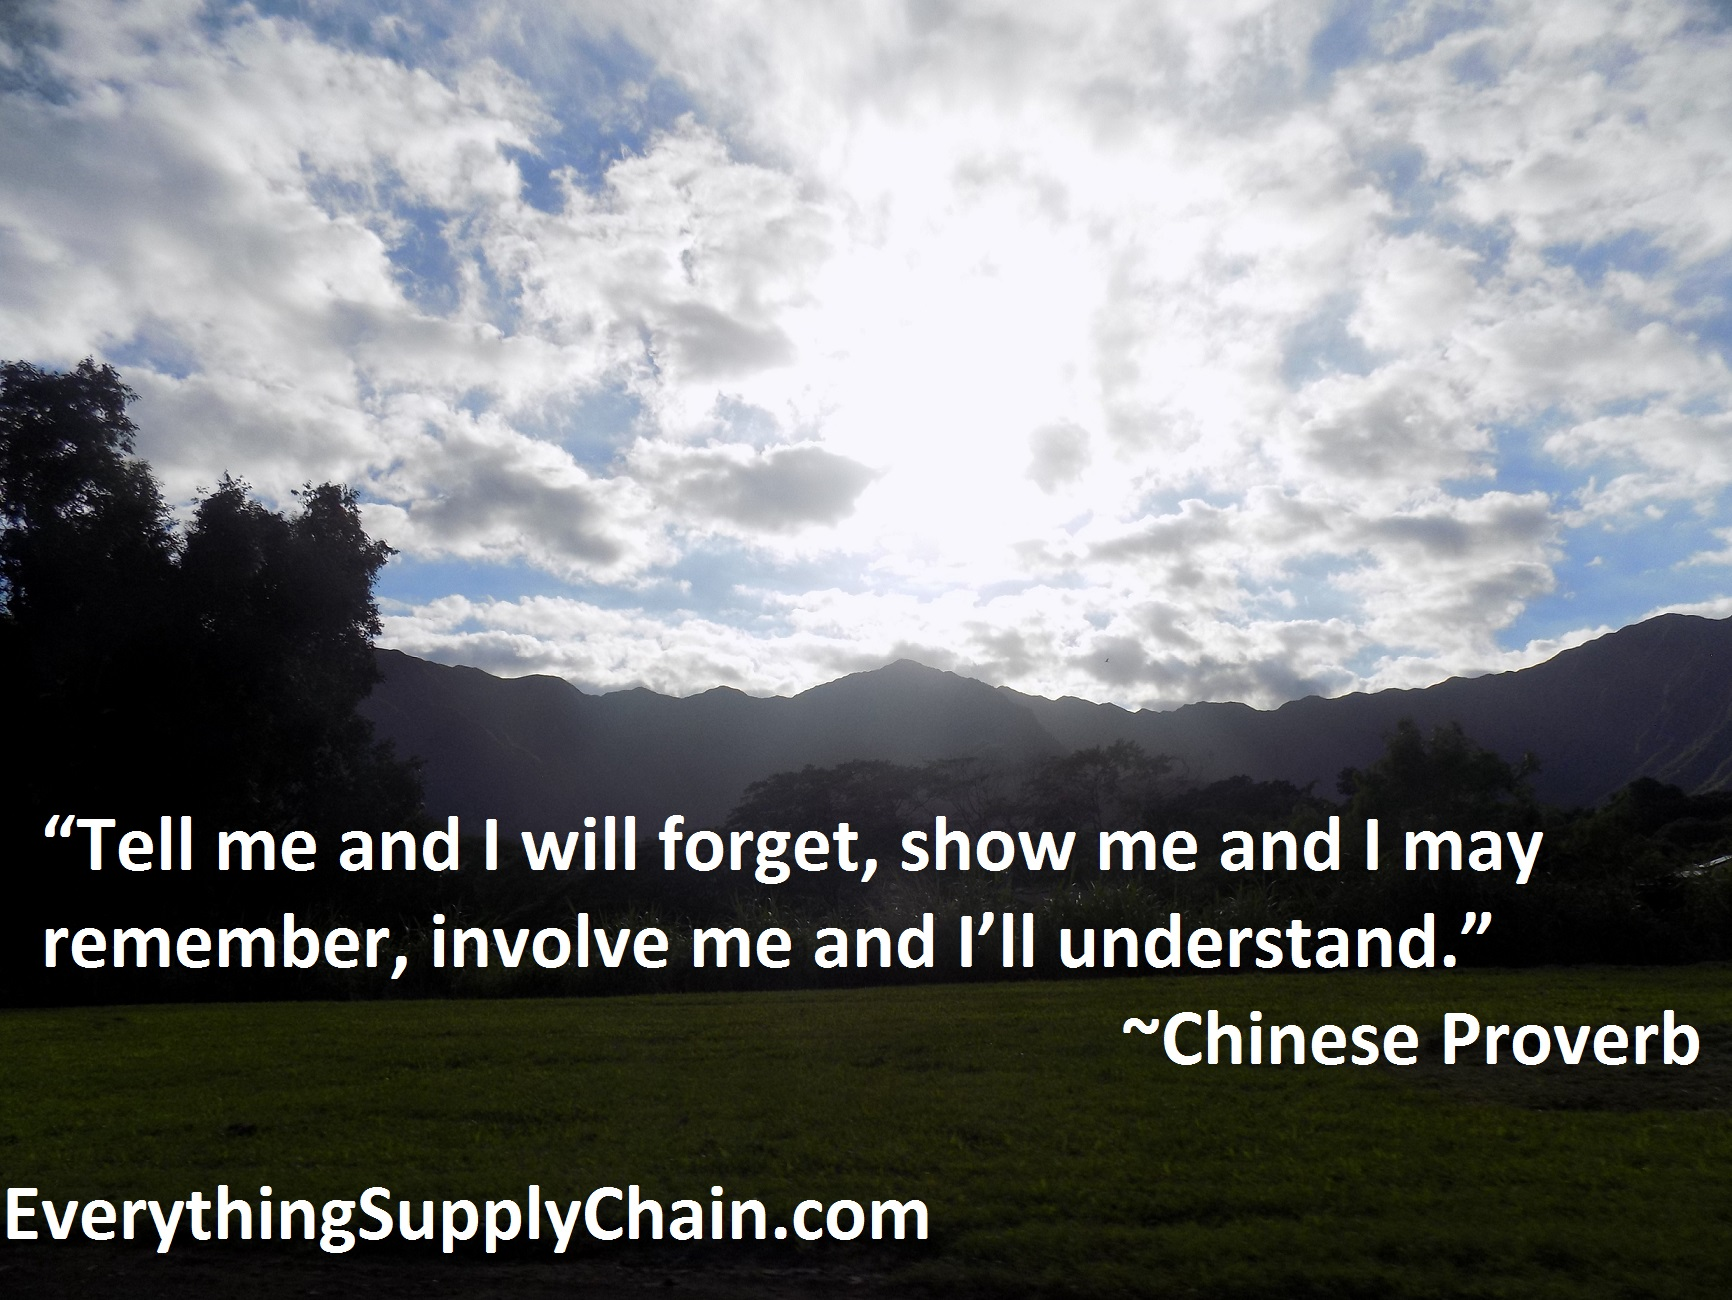 Great business and supply chain quotes with great pictures.